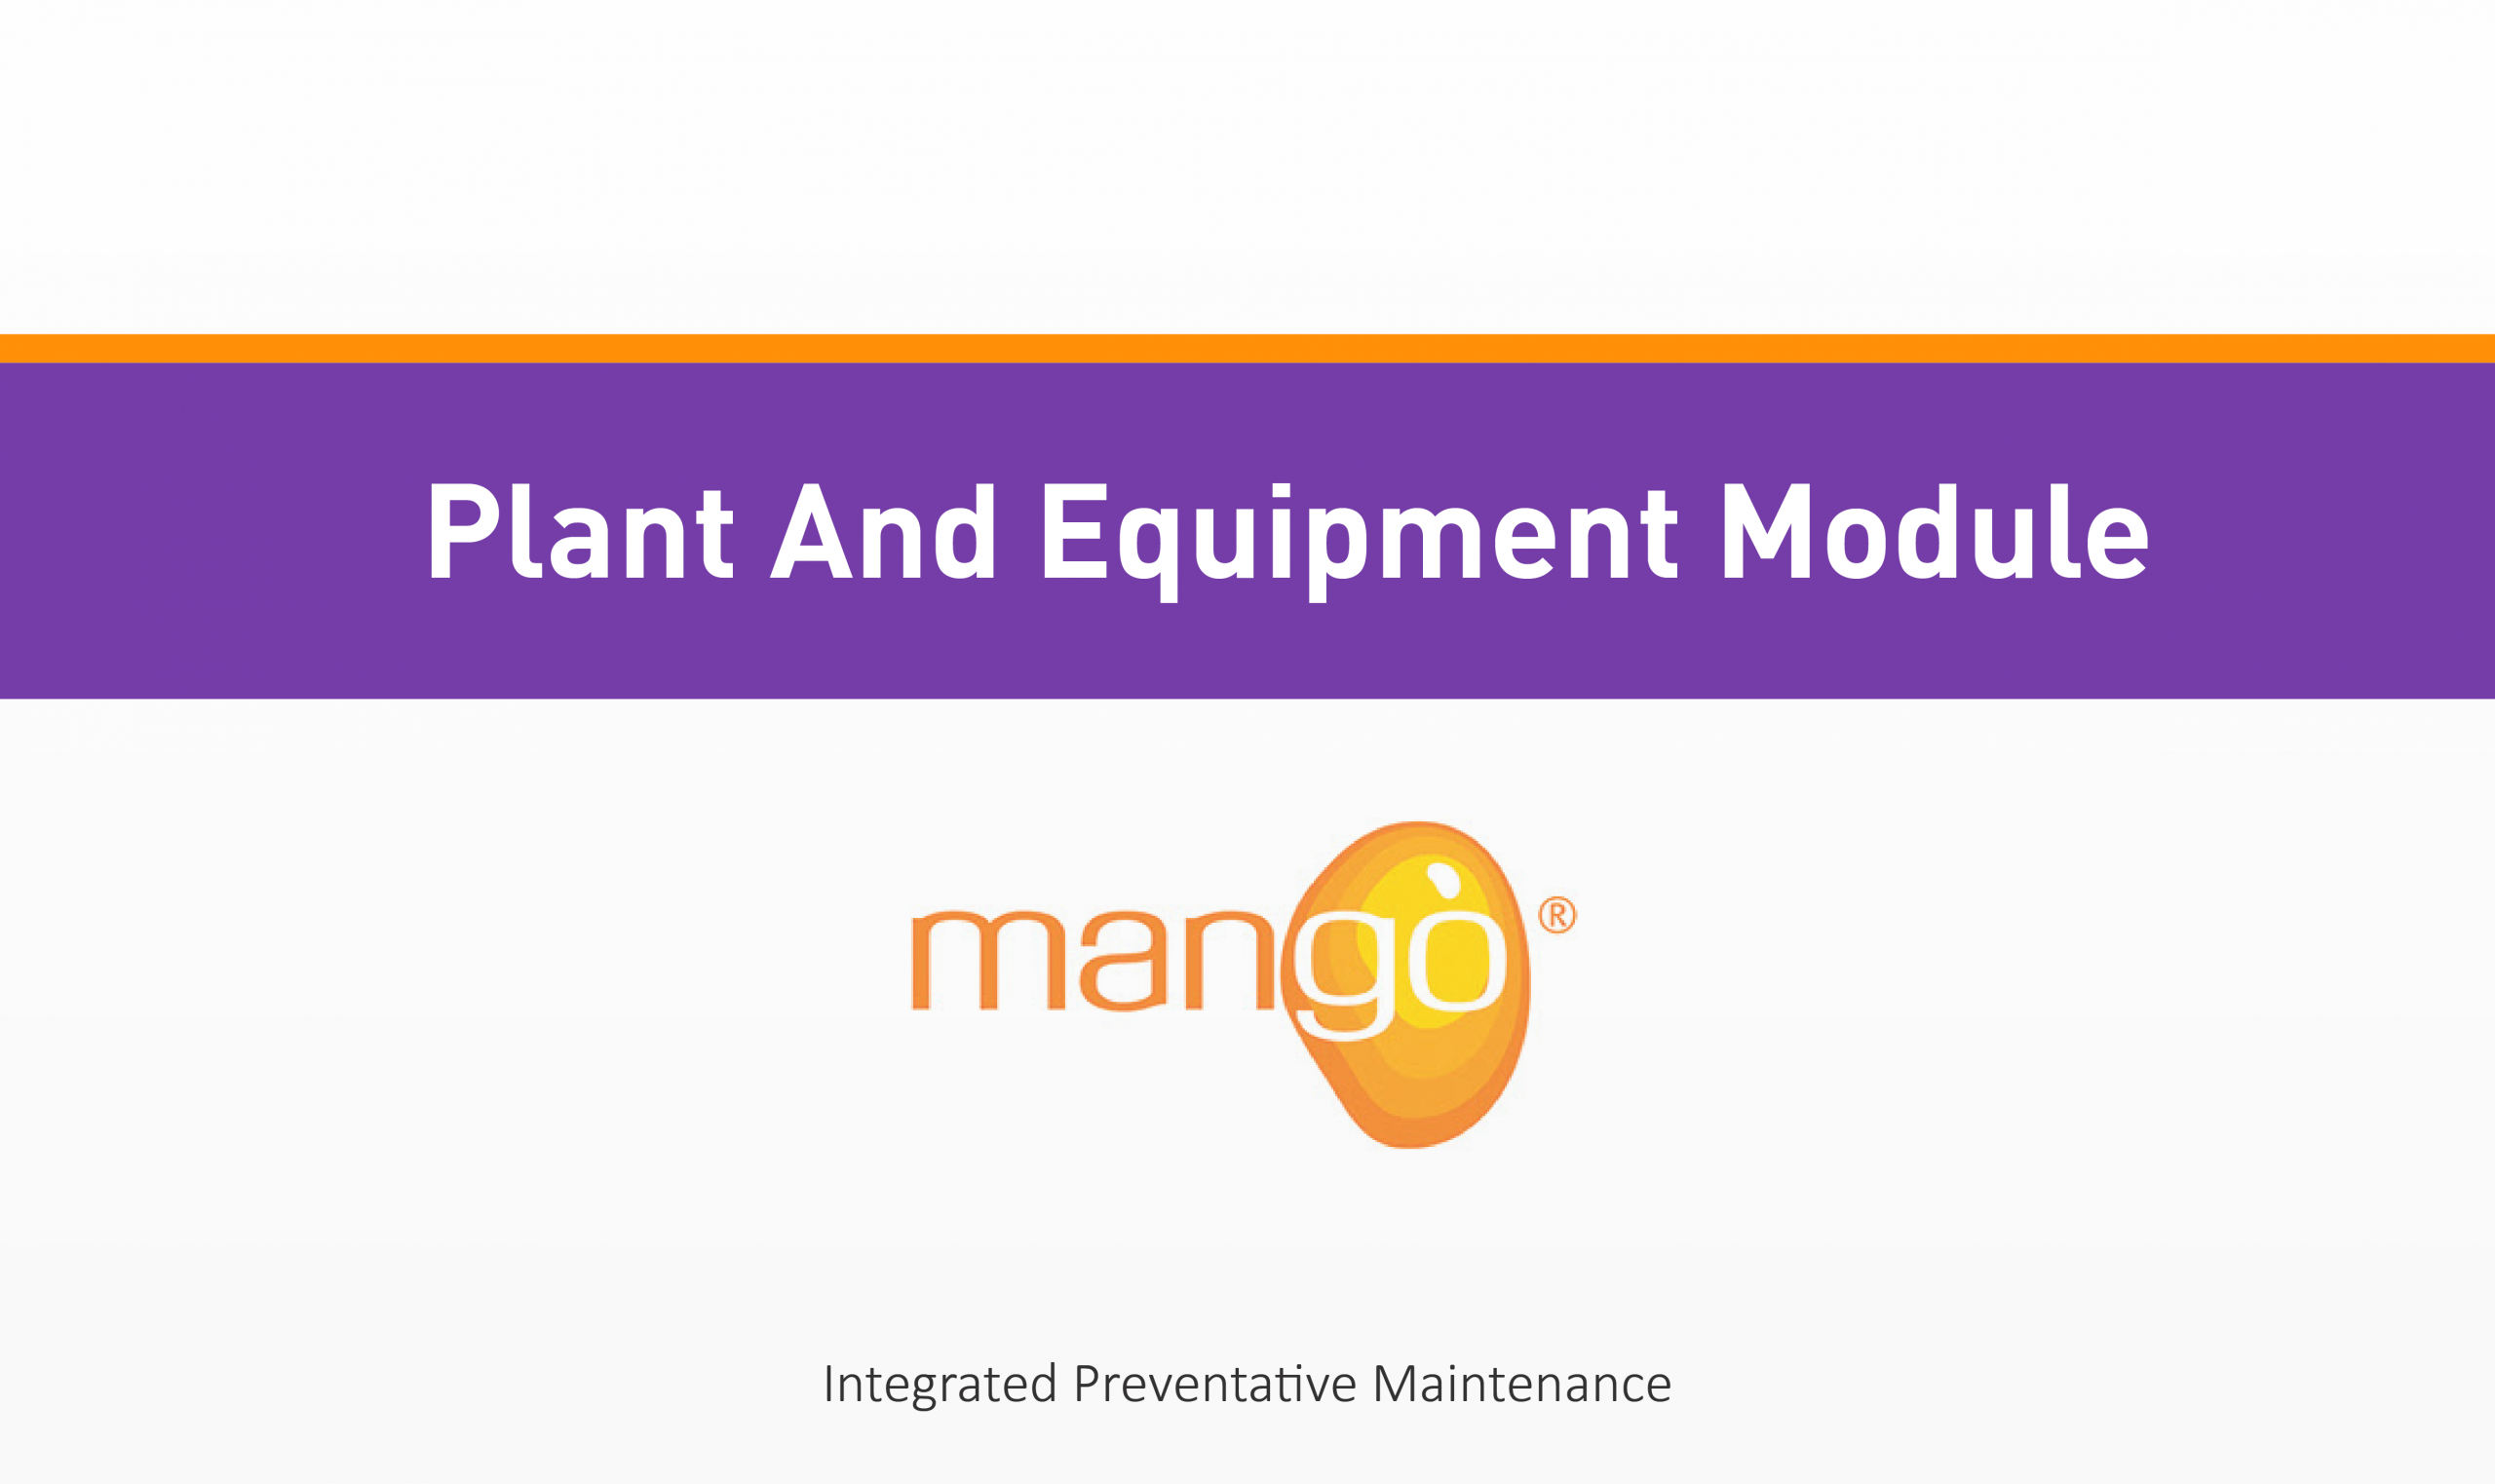 Plant and Equipment Integrated Preventative Maintenance